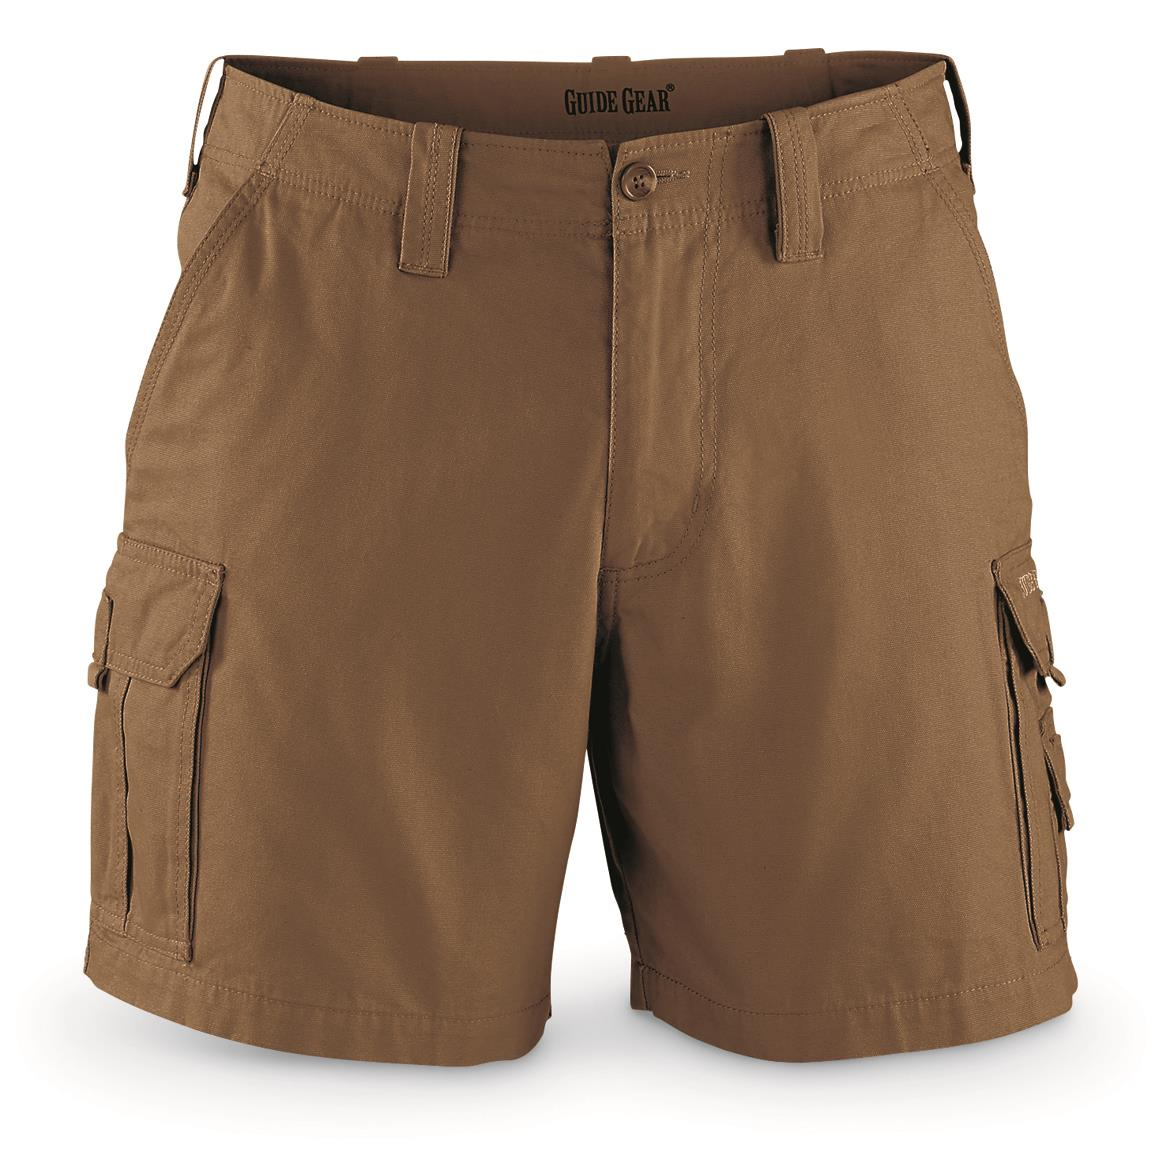 "Guide Gear Men's Outdoor Cargo Shorts, British Khaki, 6"" inseam"